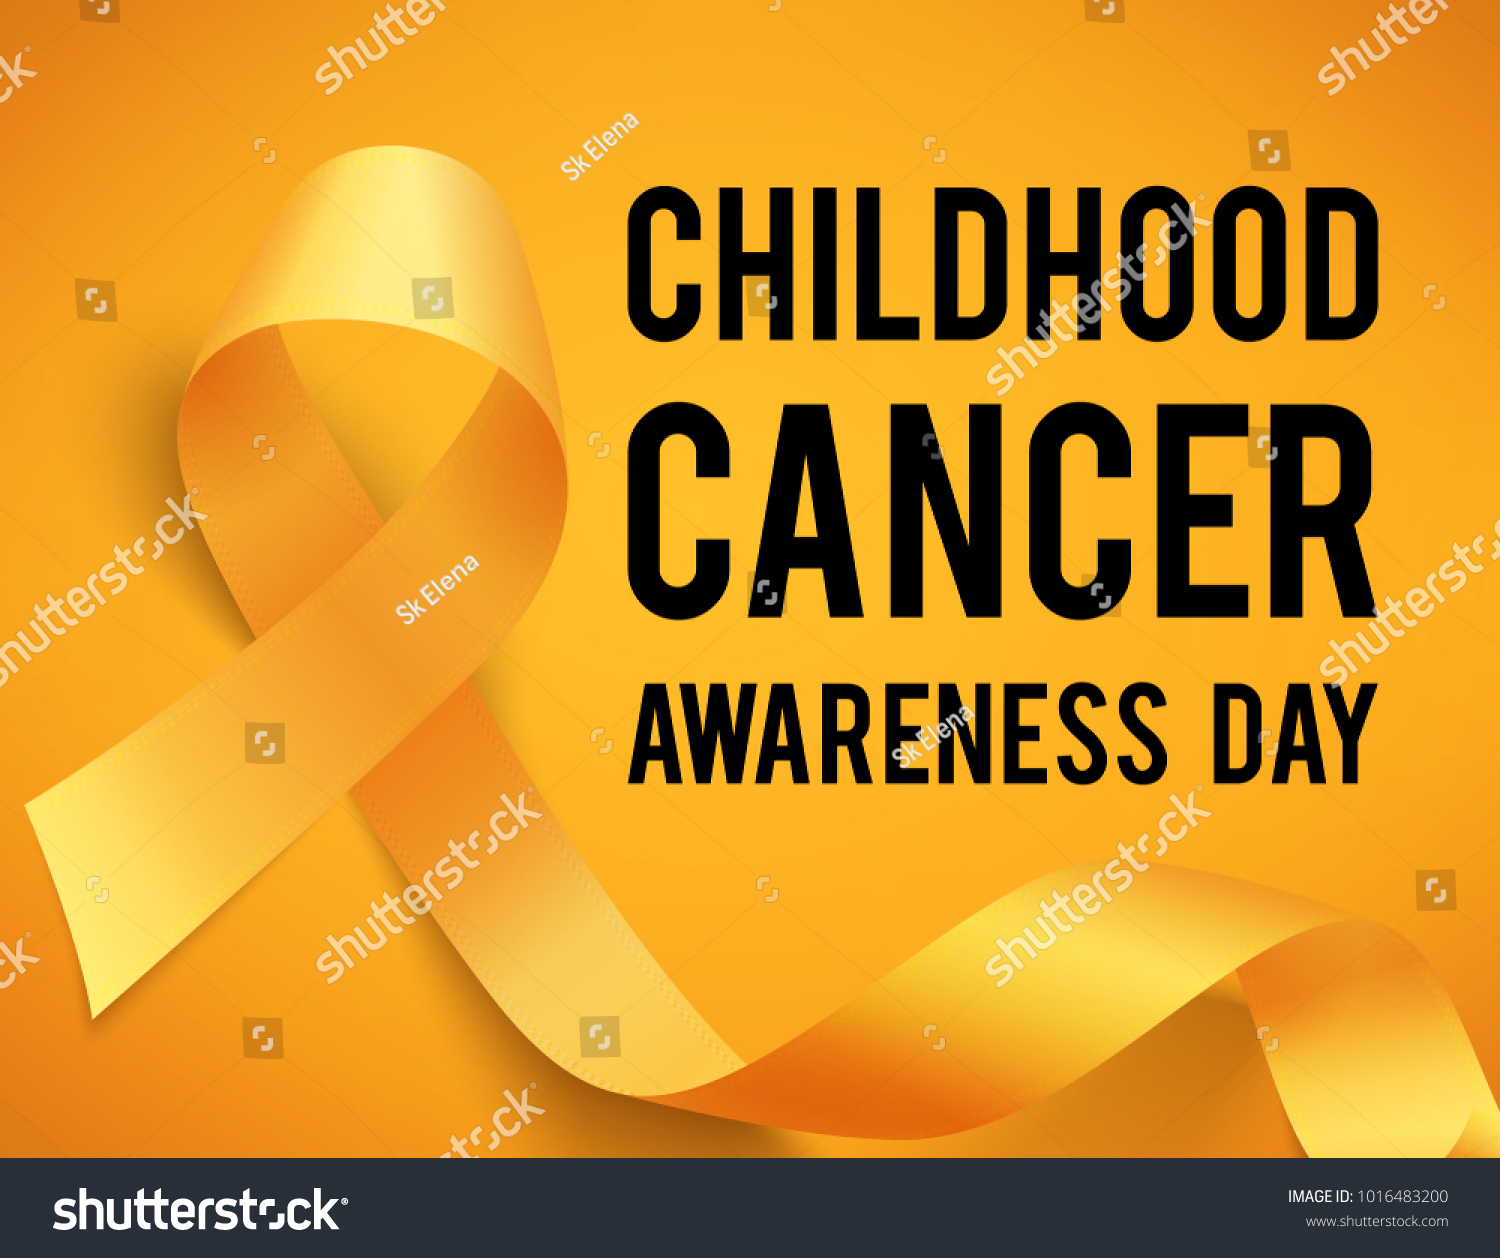 Poster childhood cancer awareness day symbol stock vector 1016483200 poster for childhood cancer awareness day with symbol realistic yellow ribbon vector illustration buycottarizona Images